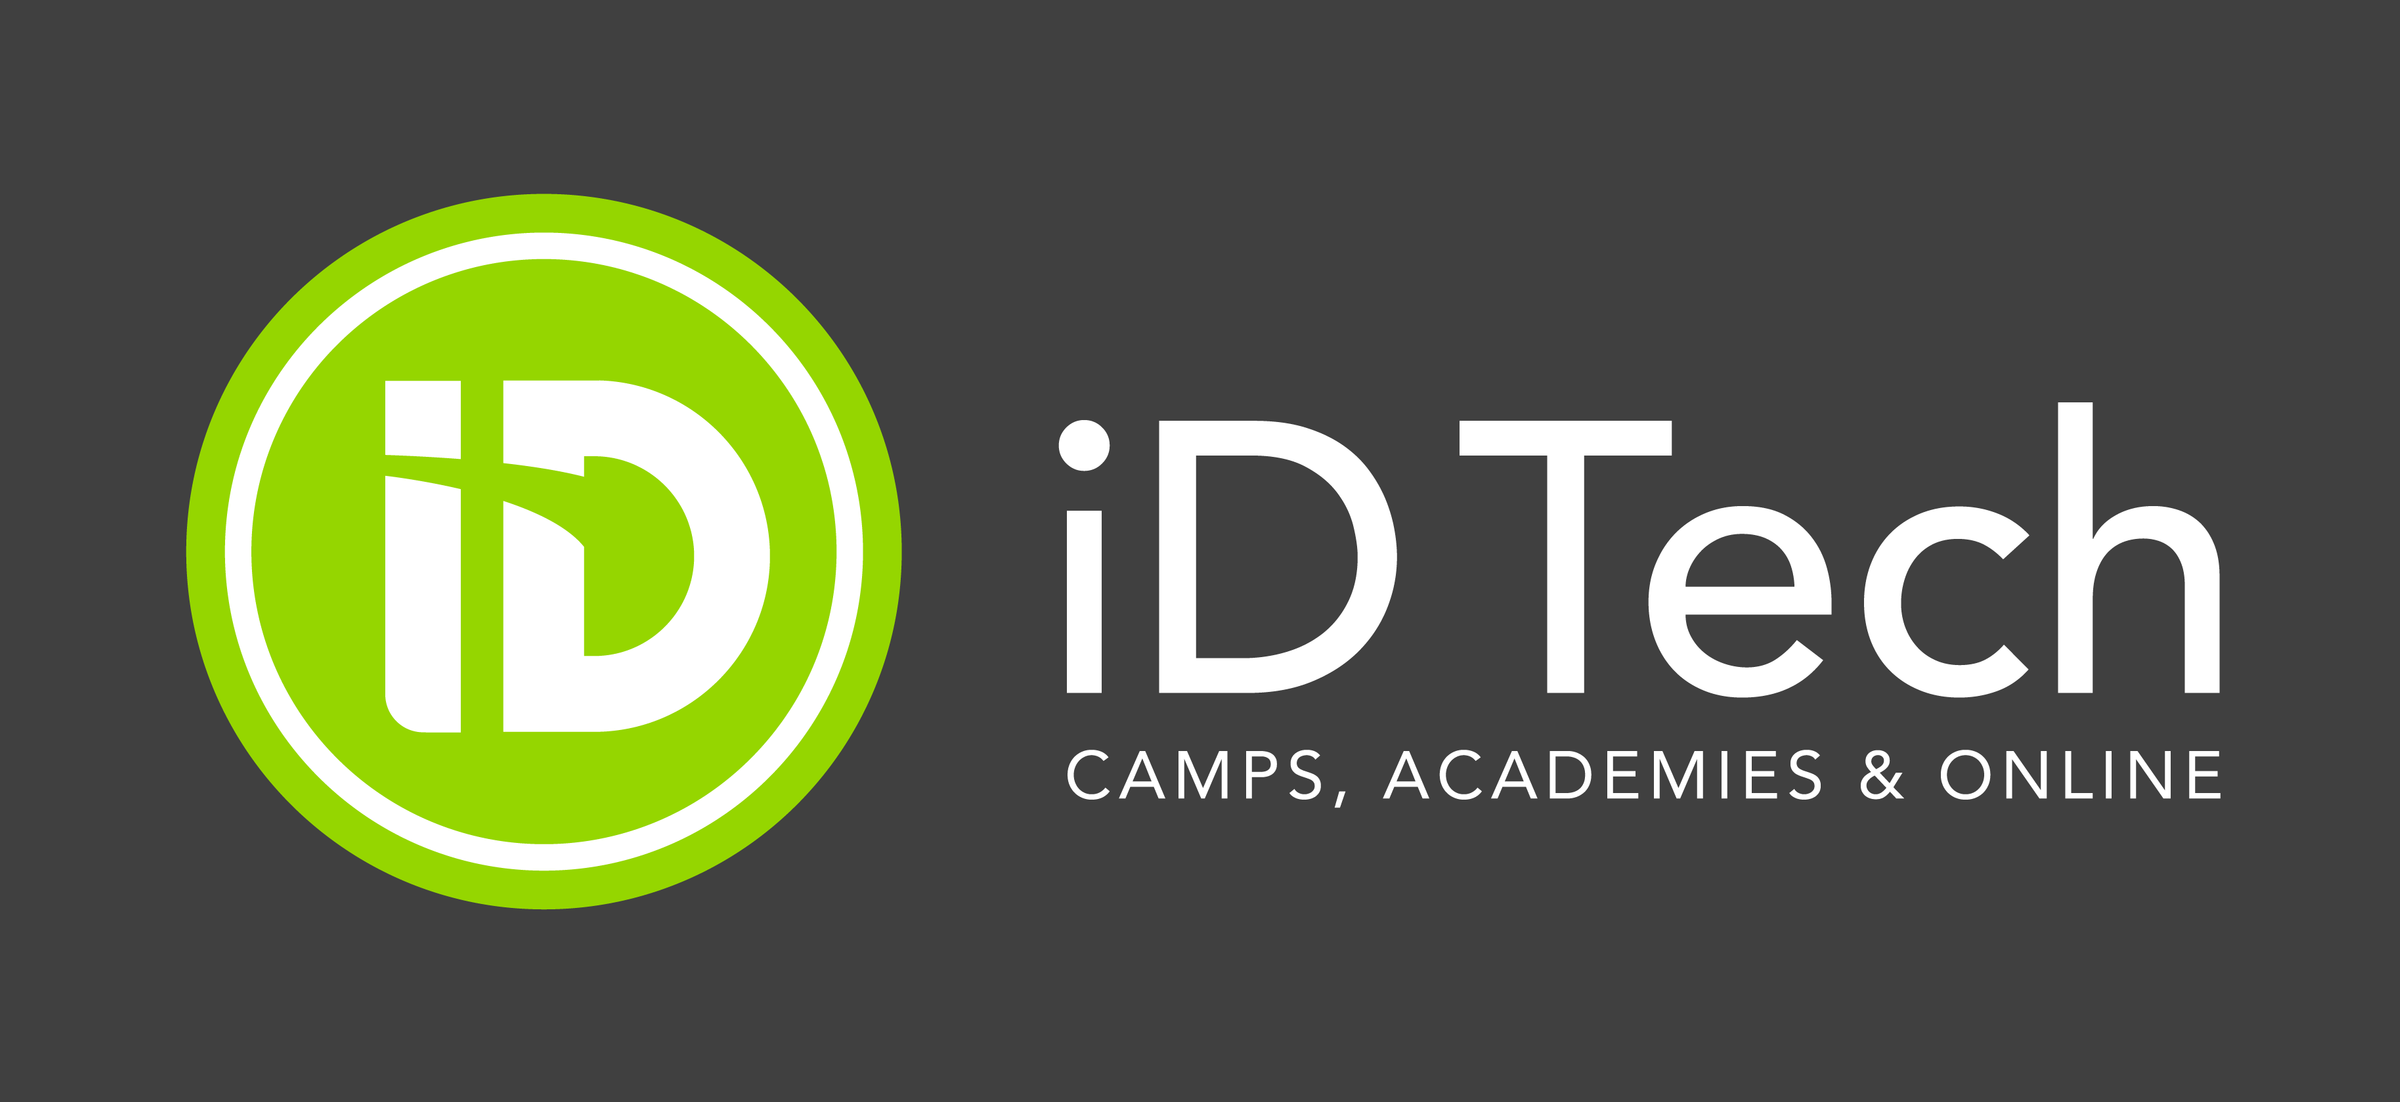 iD Tech Camps: #1 in STEM Education - Held at University of Pennsylvania